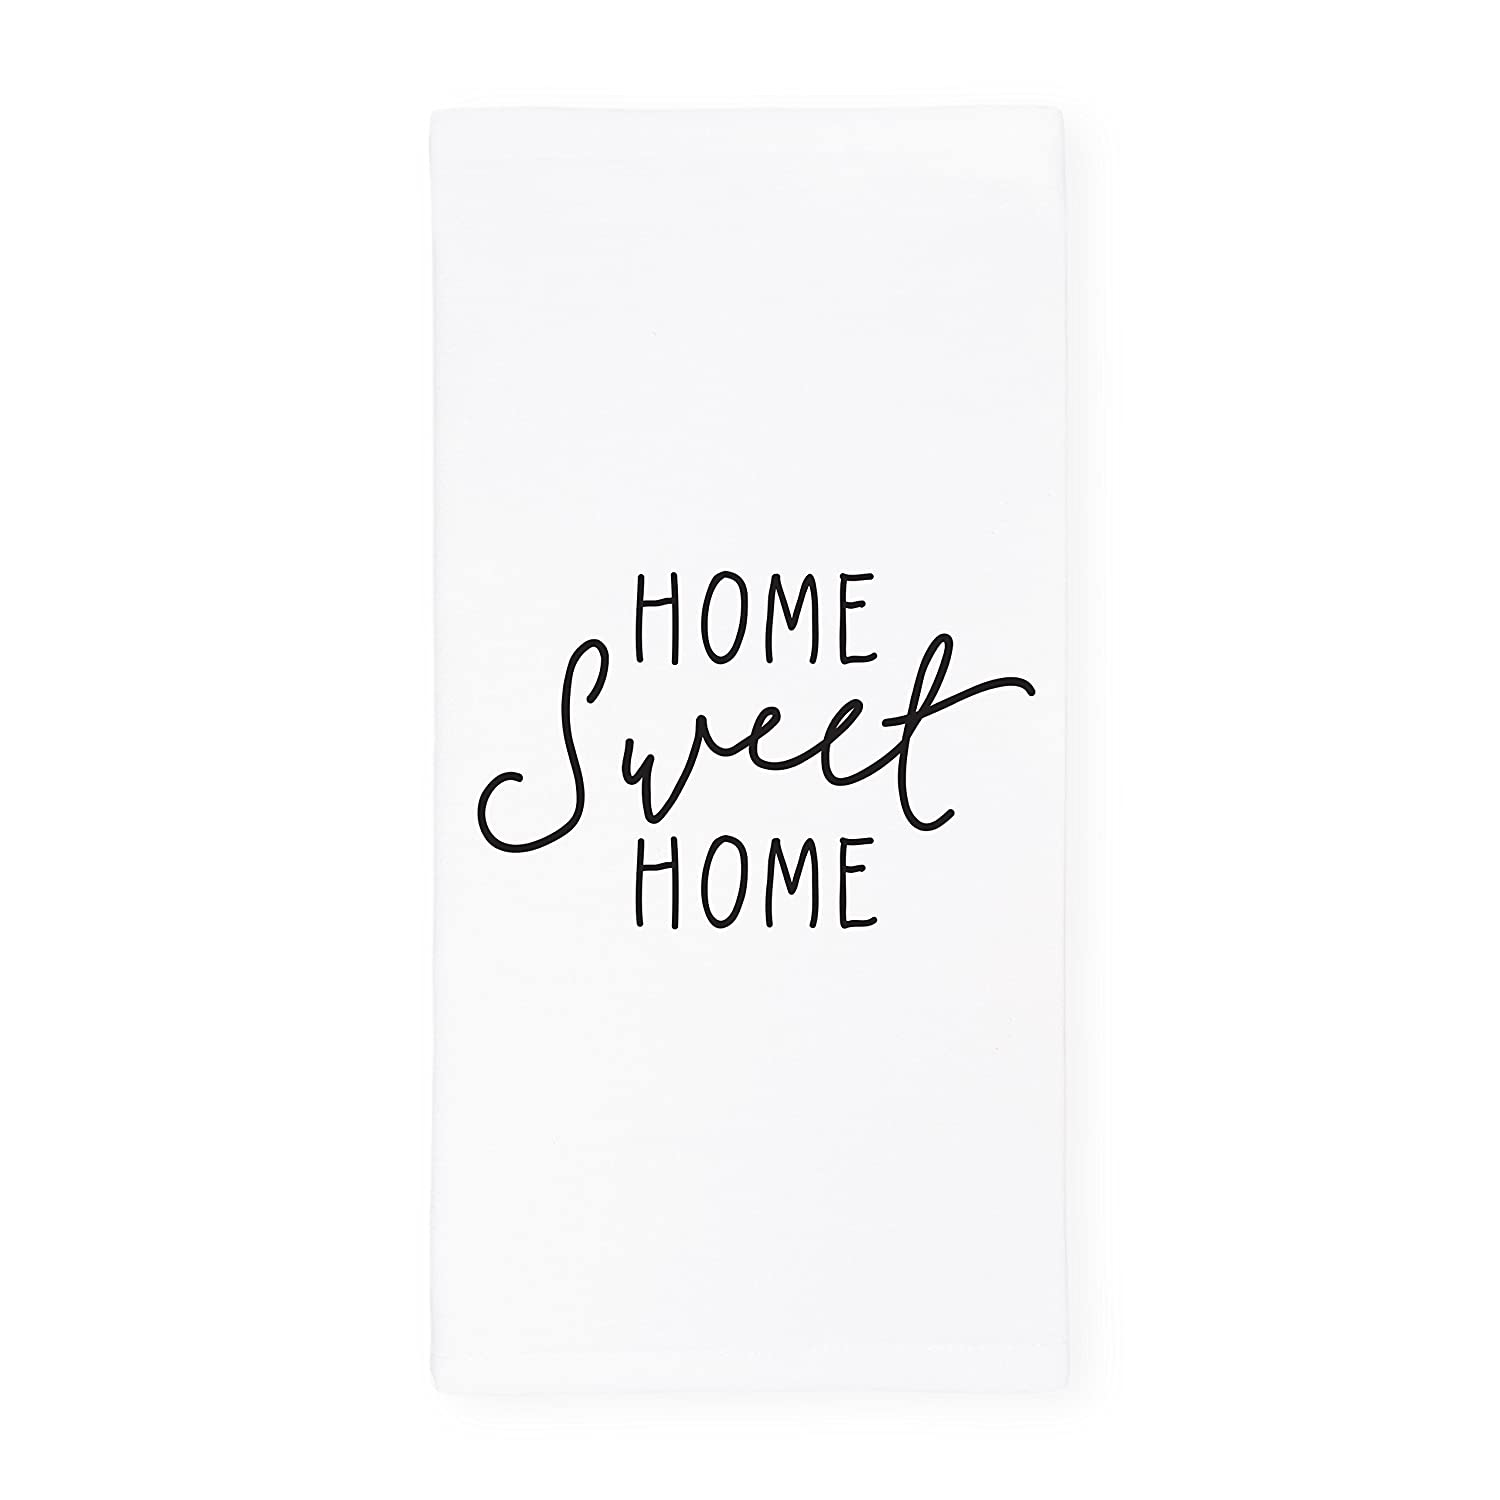 The Cotton & Canvas Co. Home Sweet Home Soft and Absorbent Kitchen Tea Towel, Flour Sack Towel, Dish Cloth, 1-Count